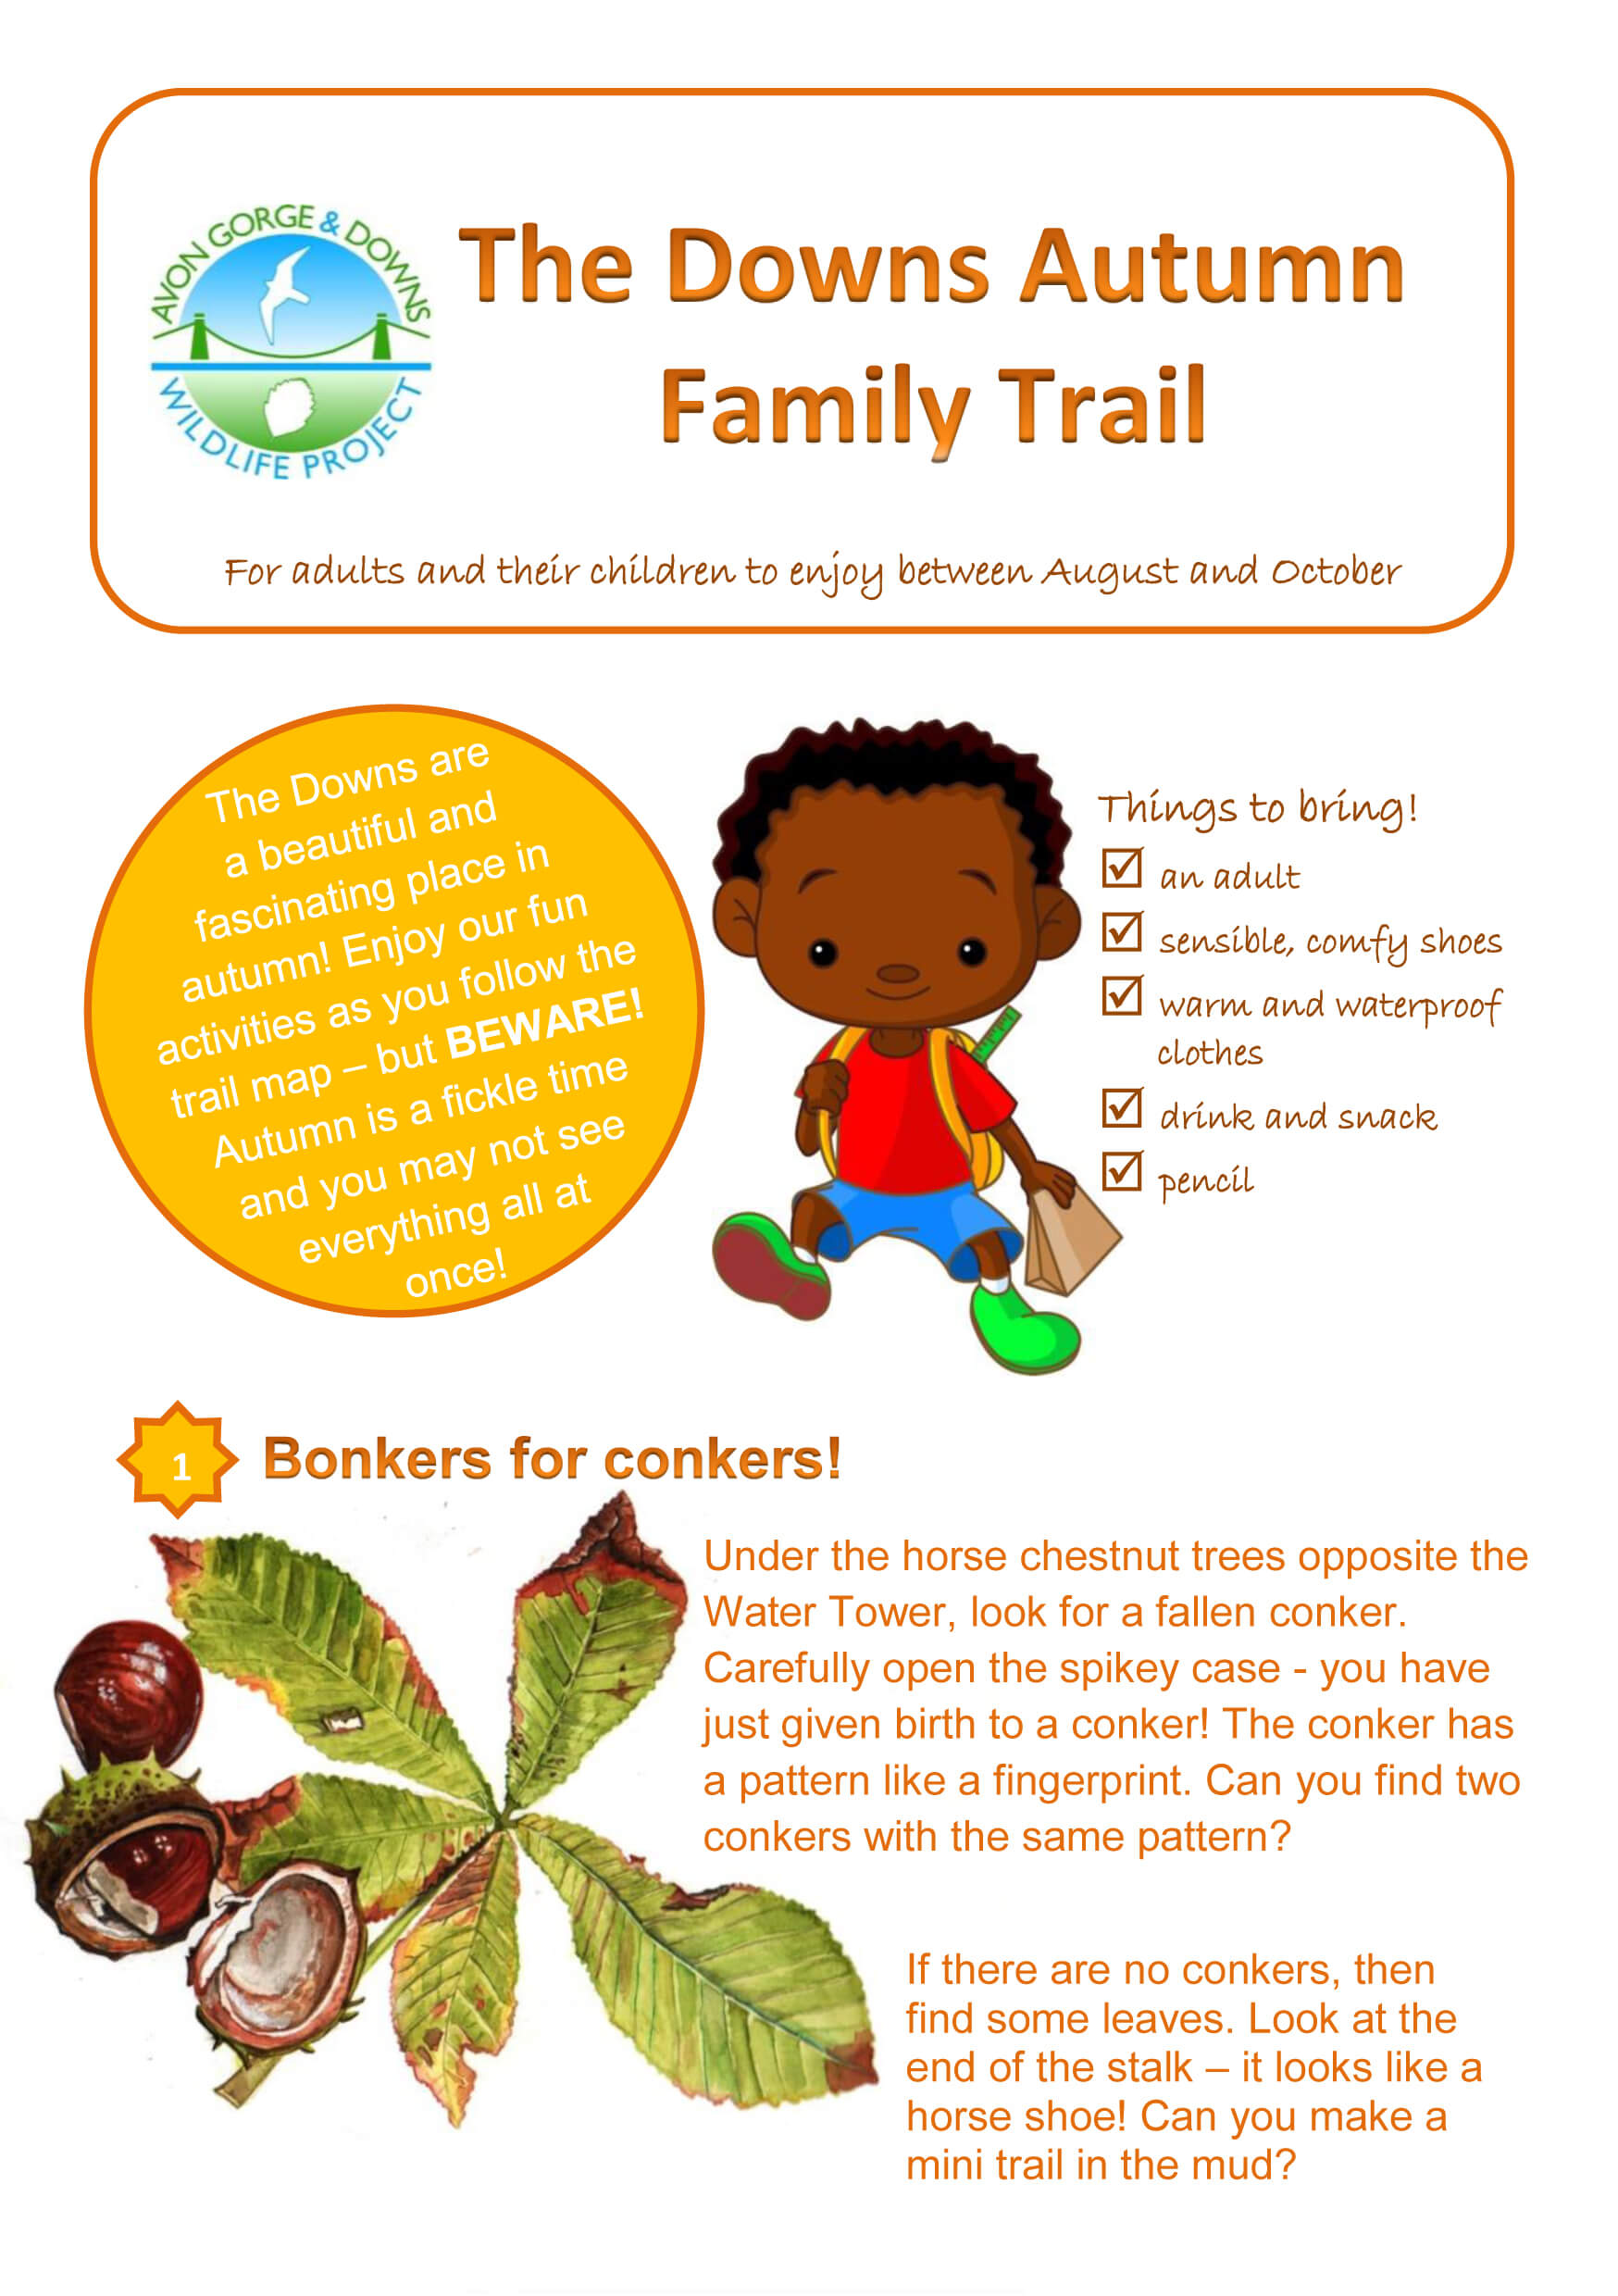 The Downs autumn family trail